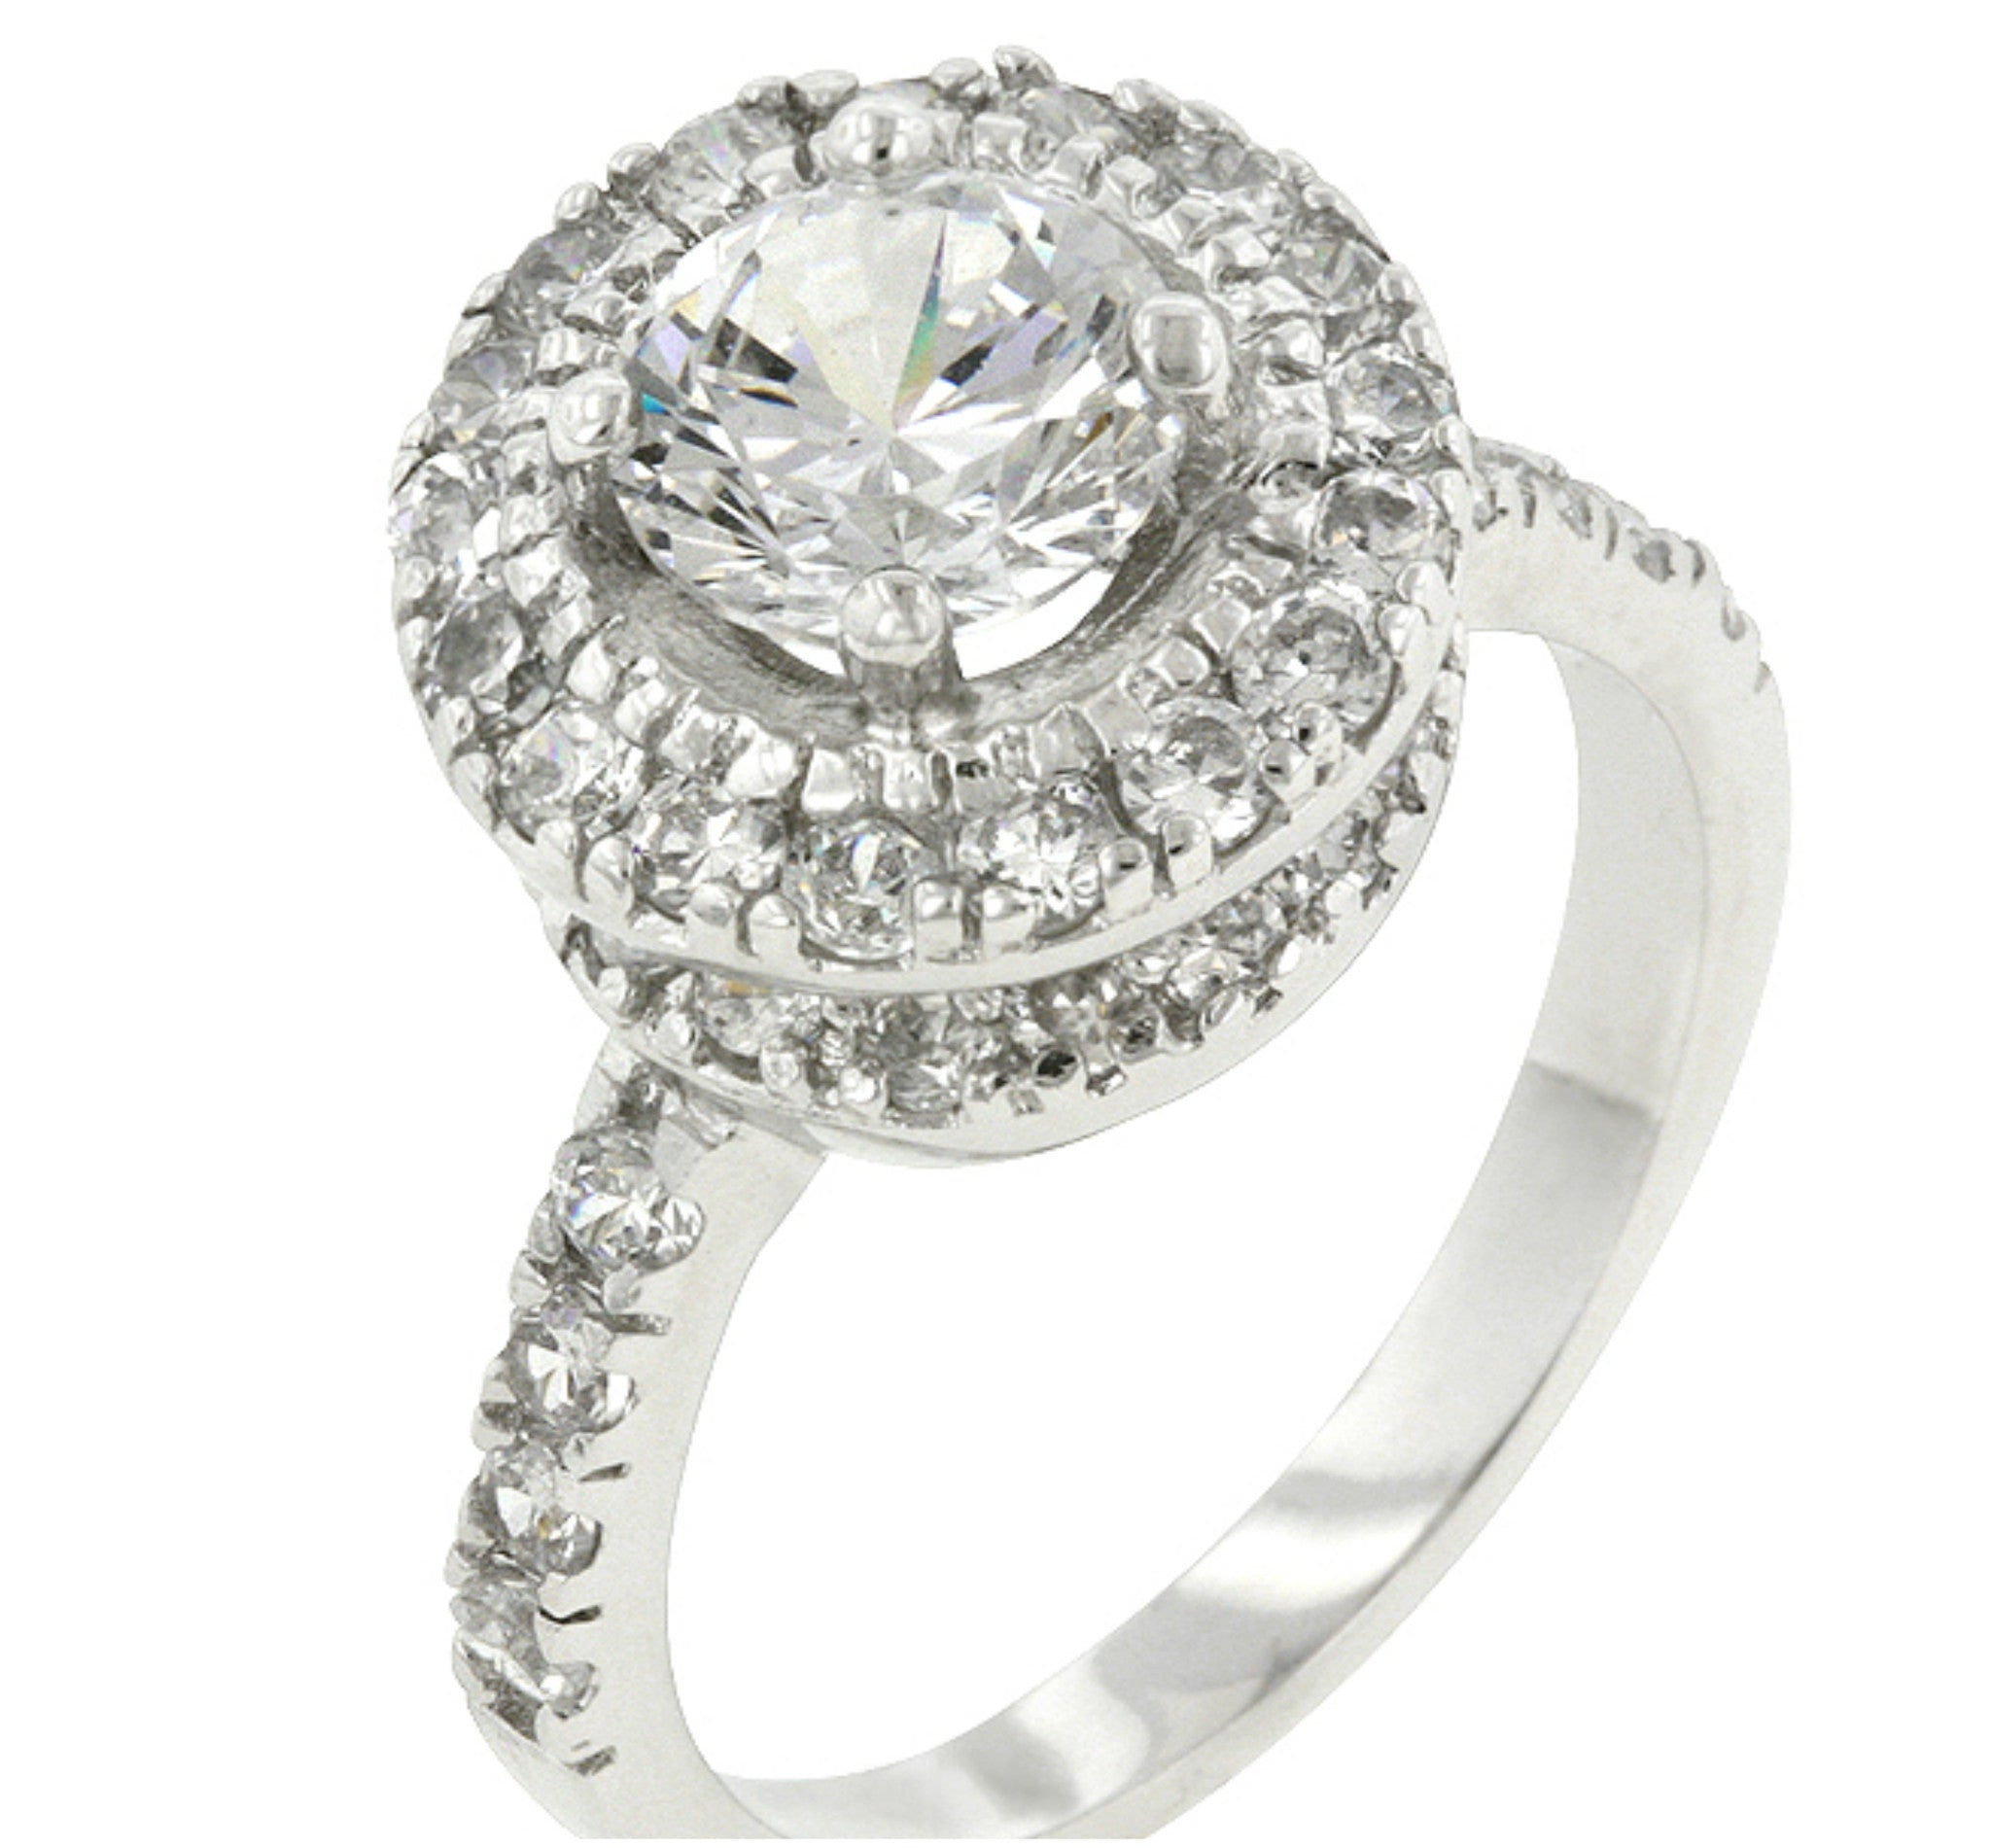 platinum wedding london button engringpackage rings uk engagement solitaire diamond